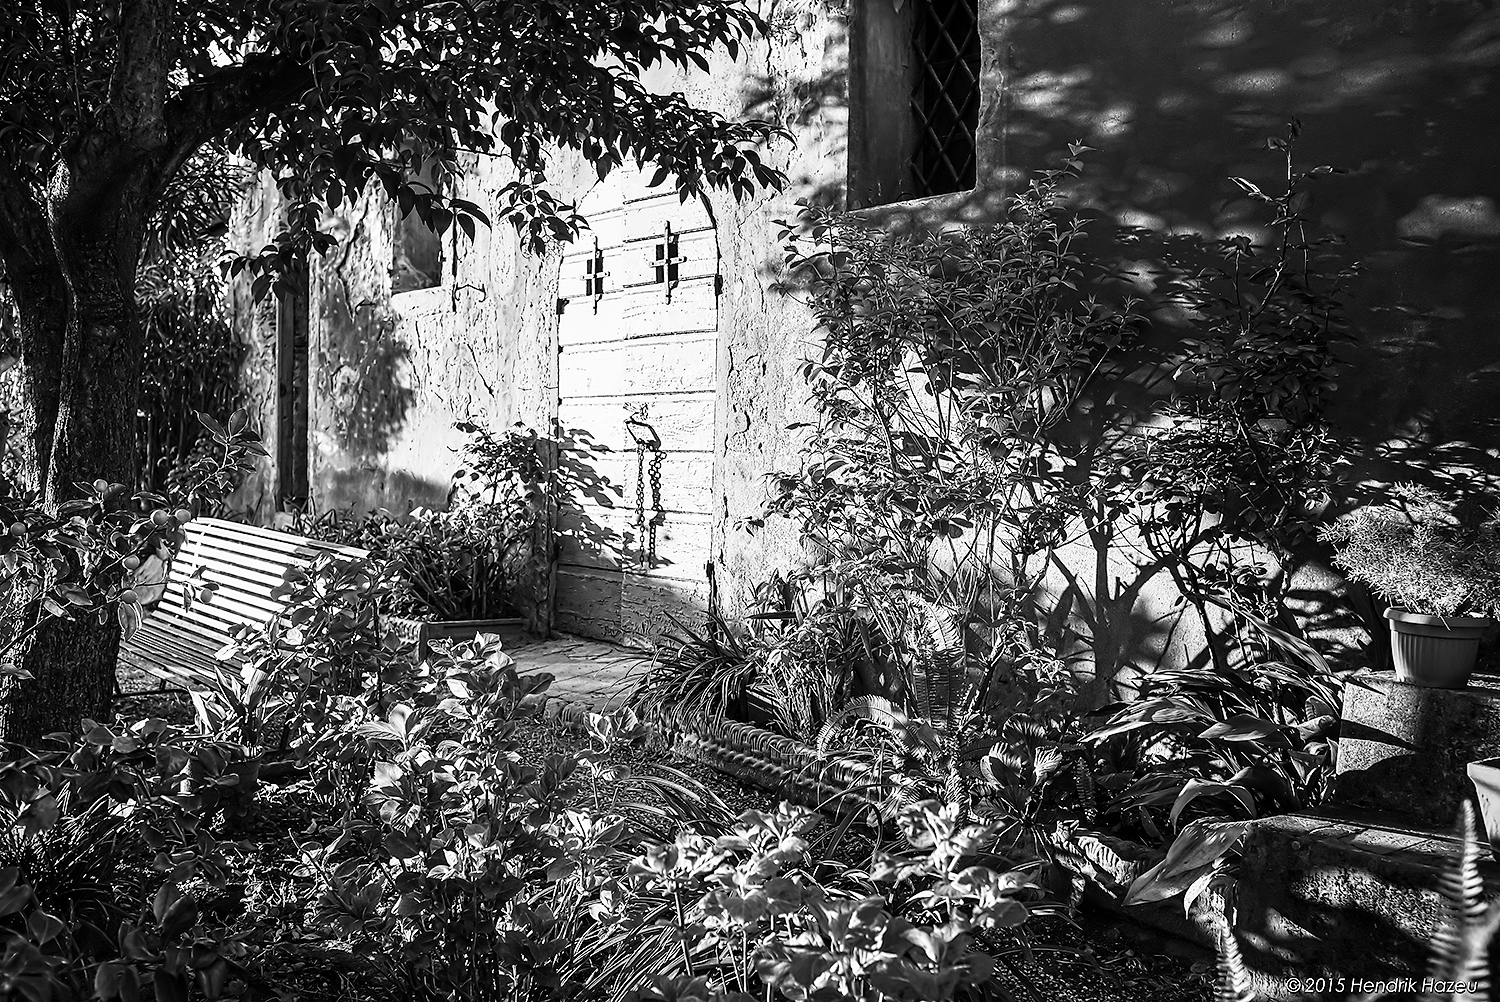 Overgrown Backyard in Buggiano Castello, Tuscany